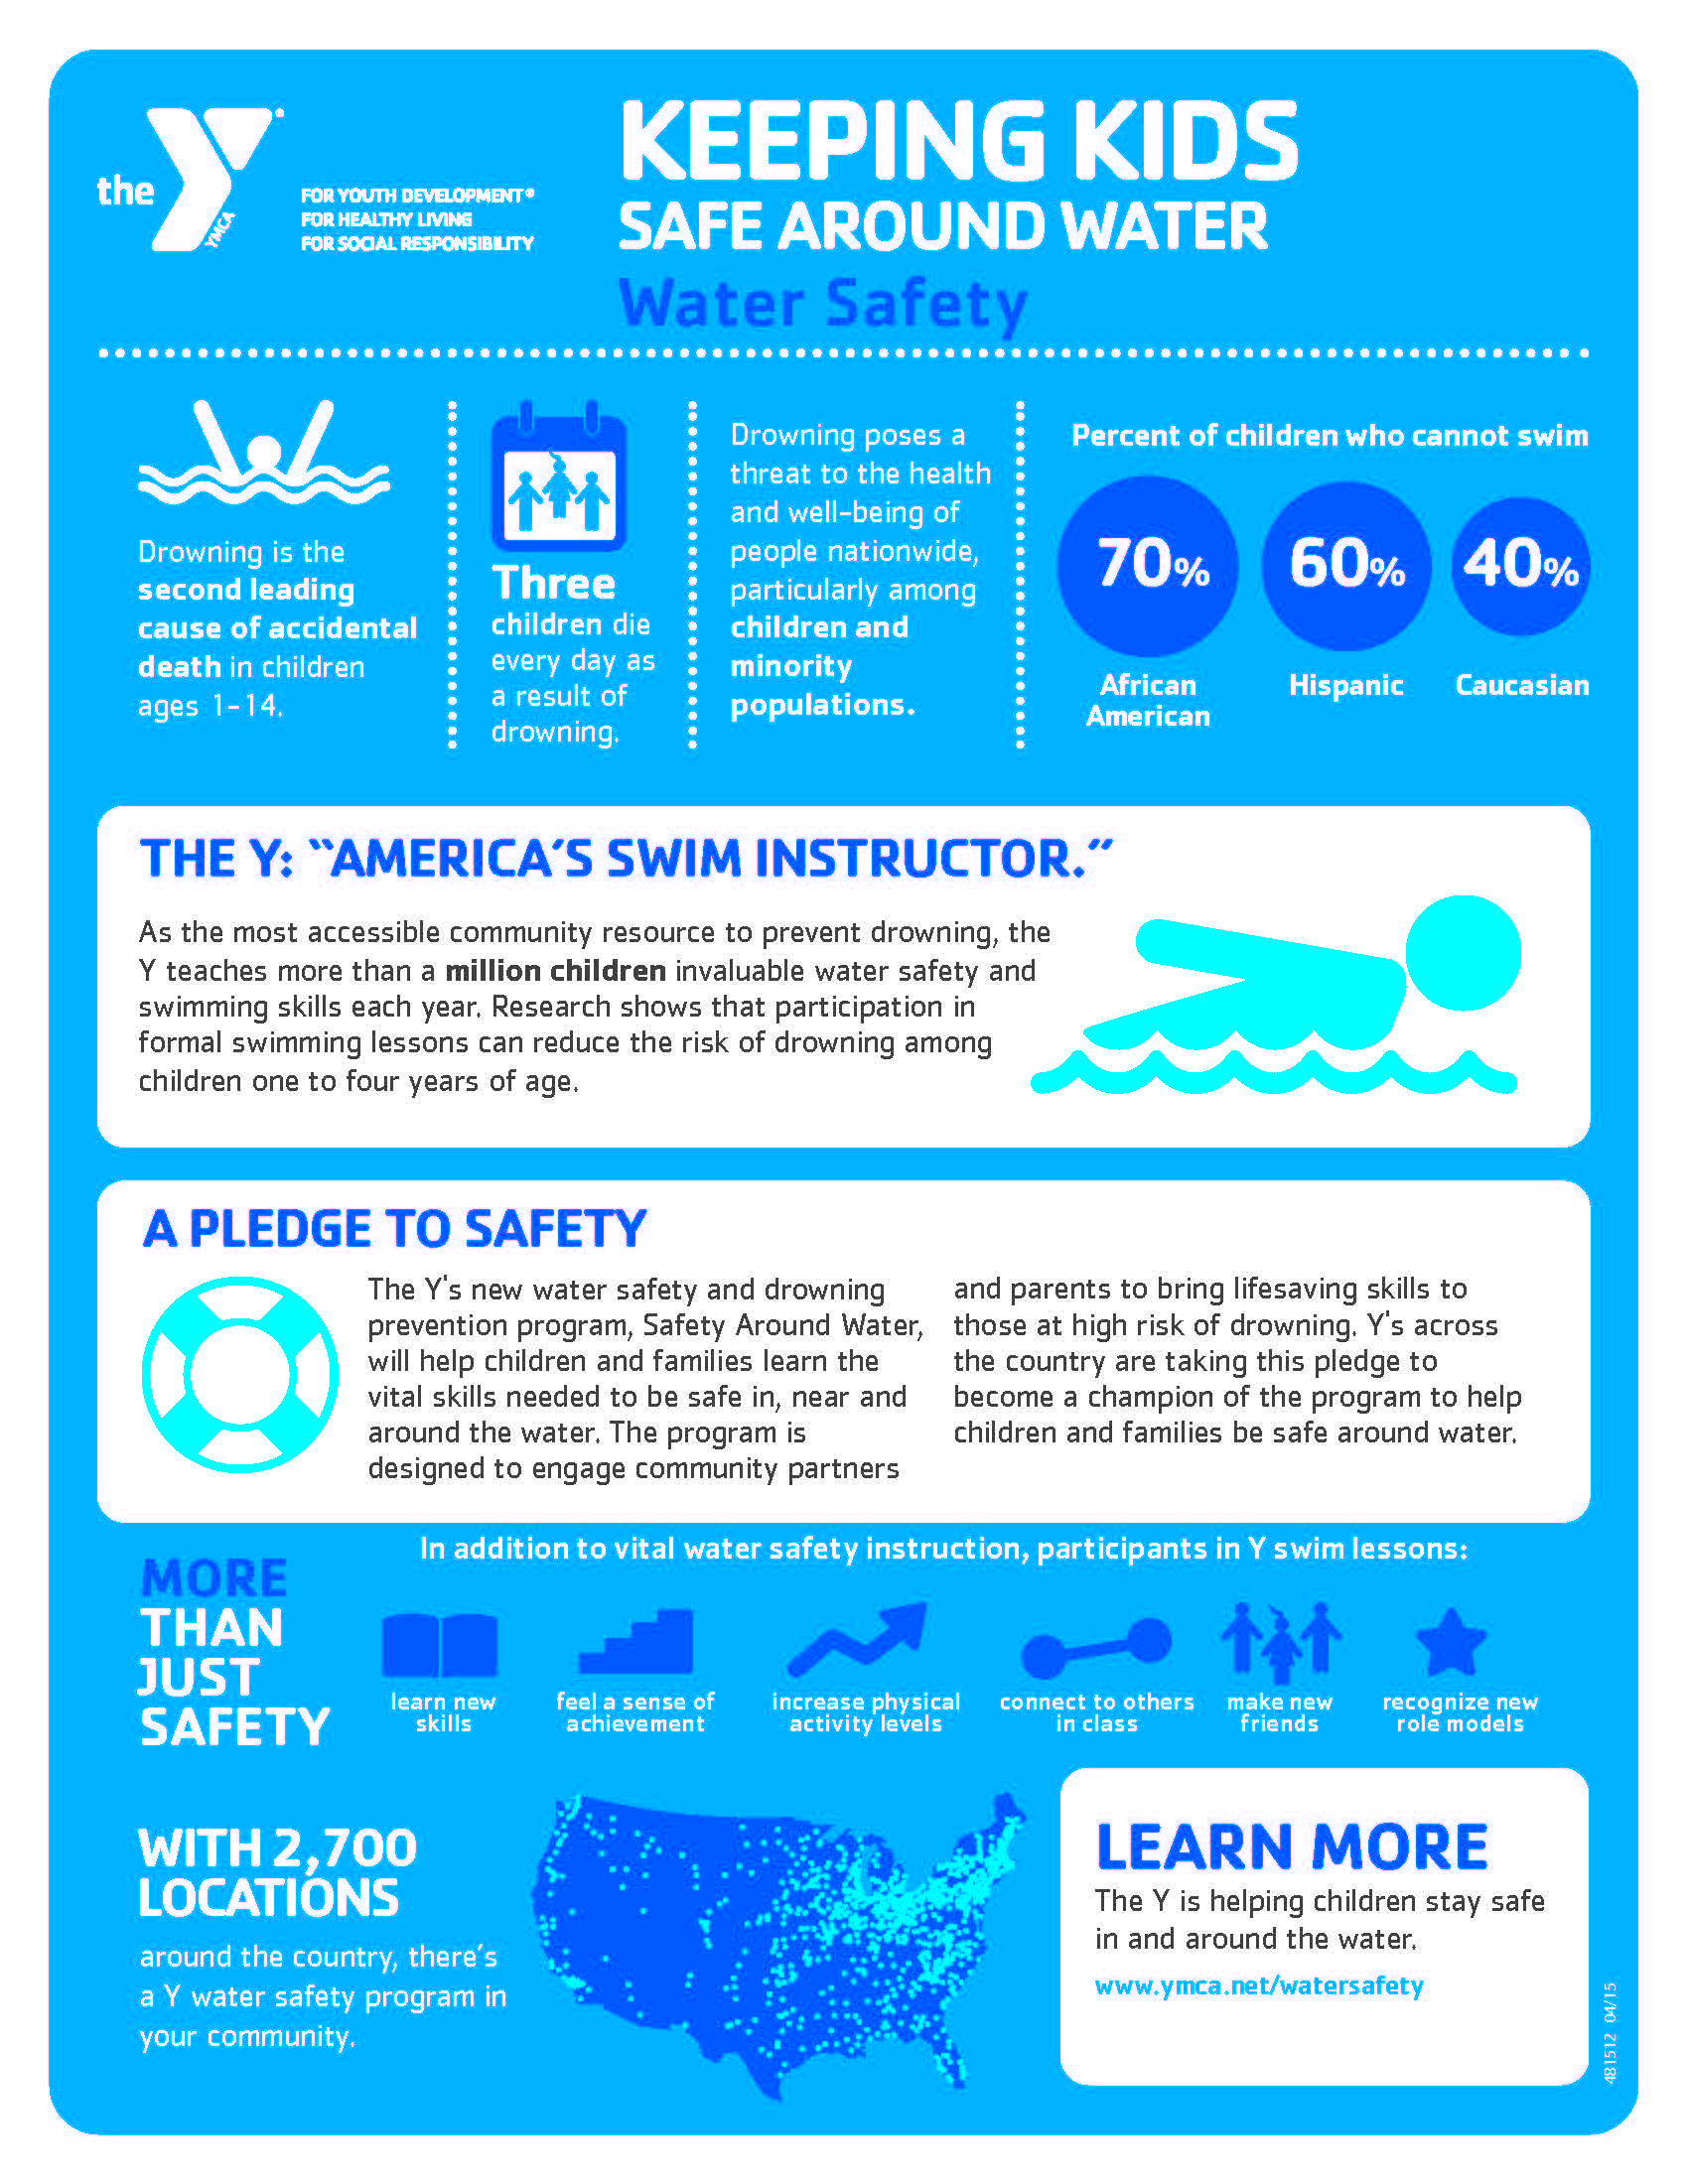 Keeping Kids Safe Around The Water Is One Of Our Most Important Goals The Y Is Proud To Be